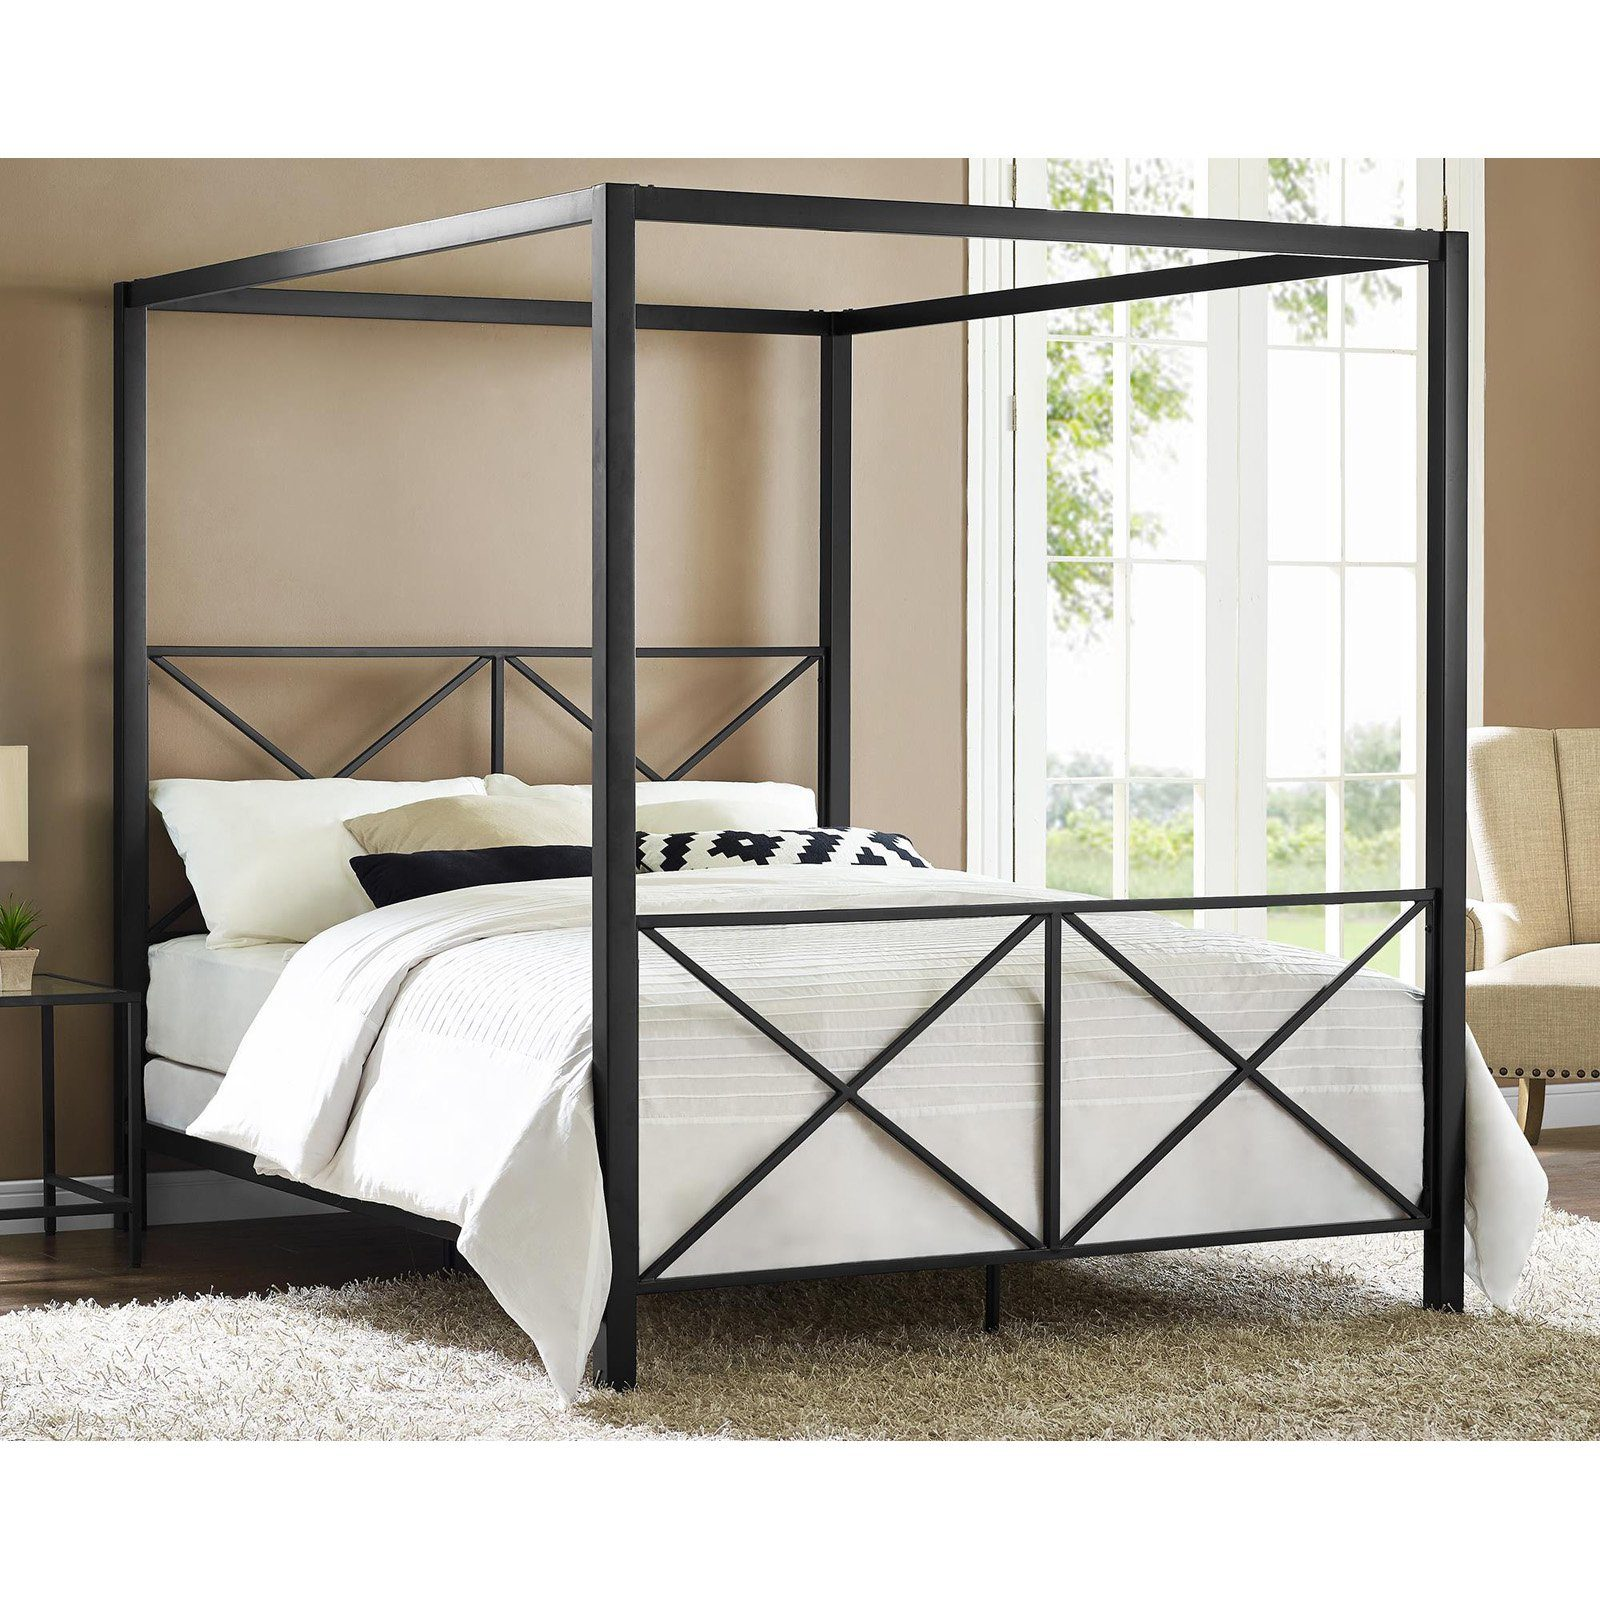 7 Best Bed Frames for Leesa Mattress (2018 Updated)